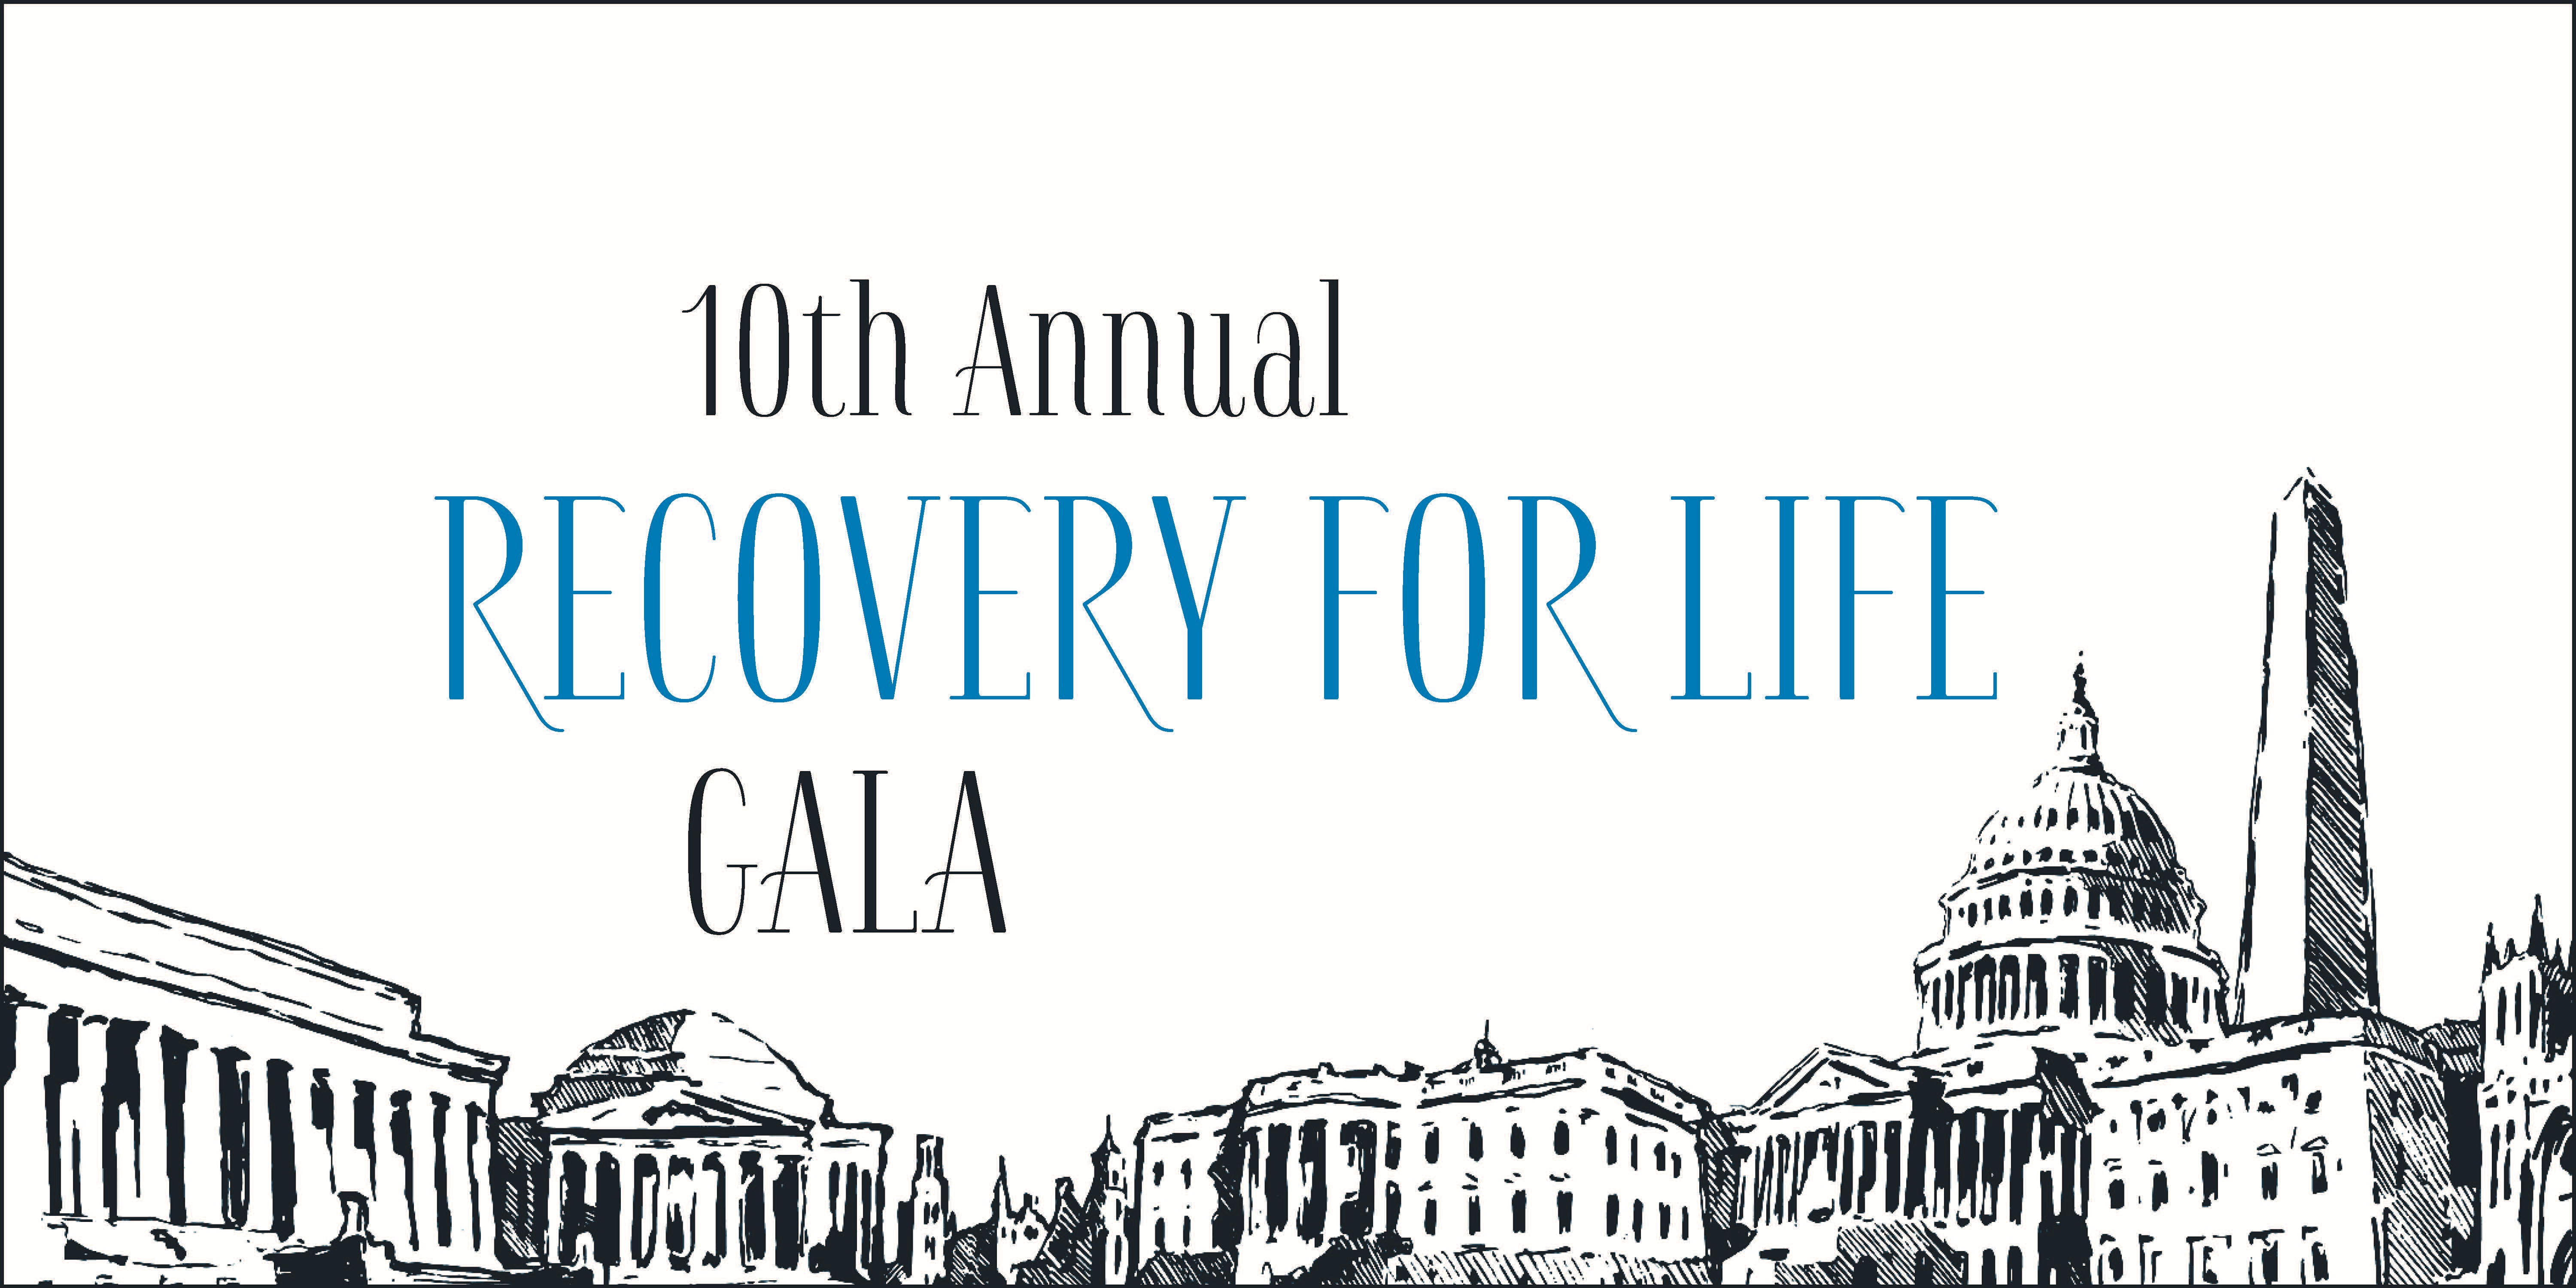 10th Annual Recovery for Life Washington D.C. Gala